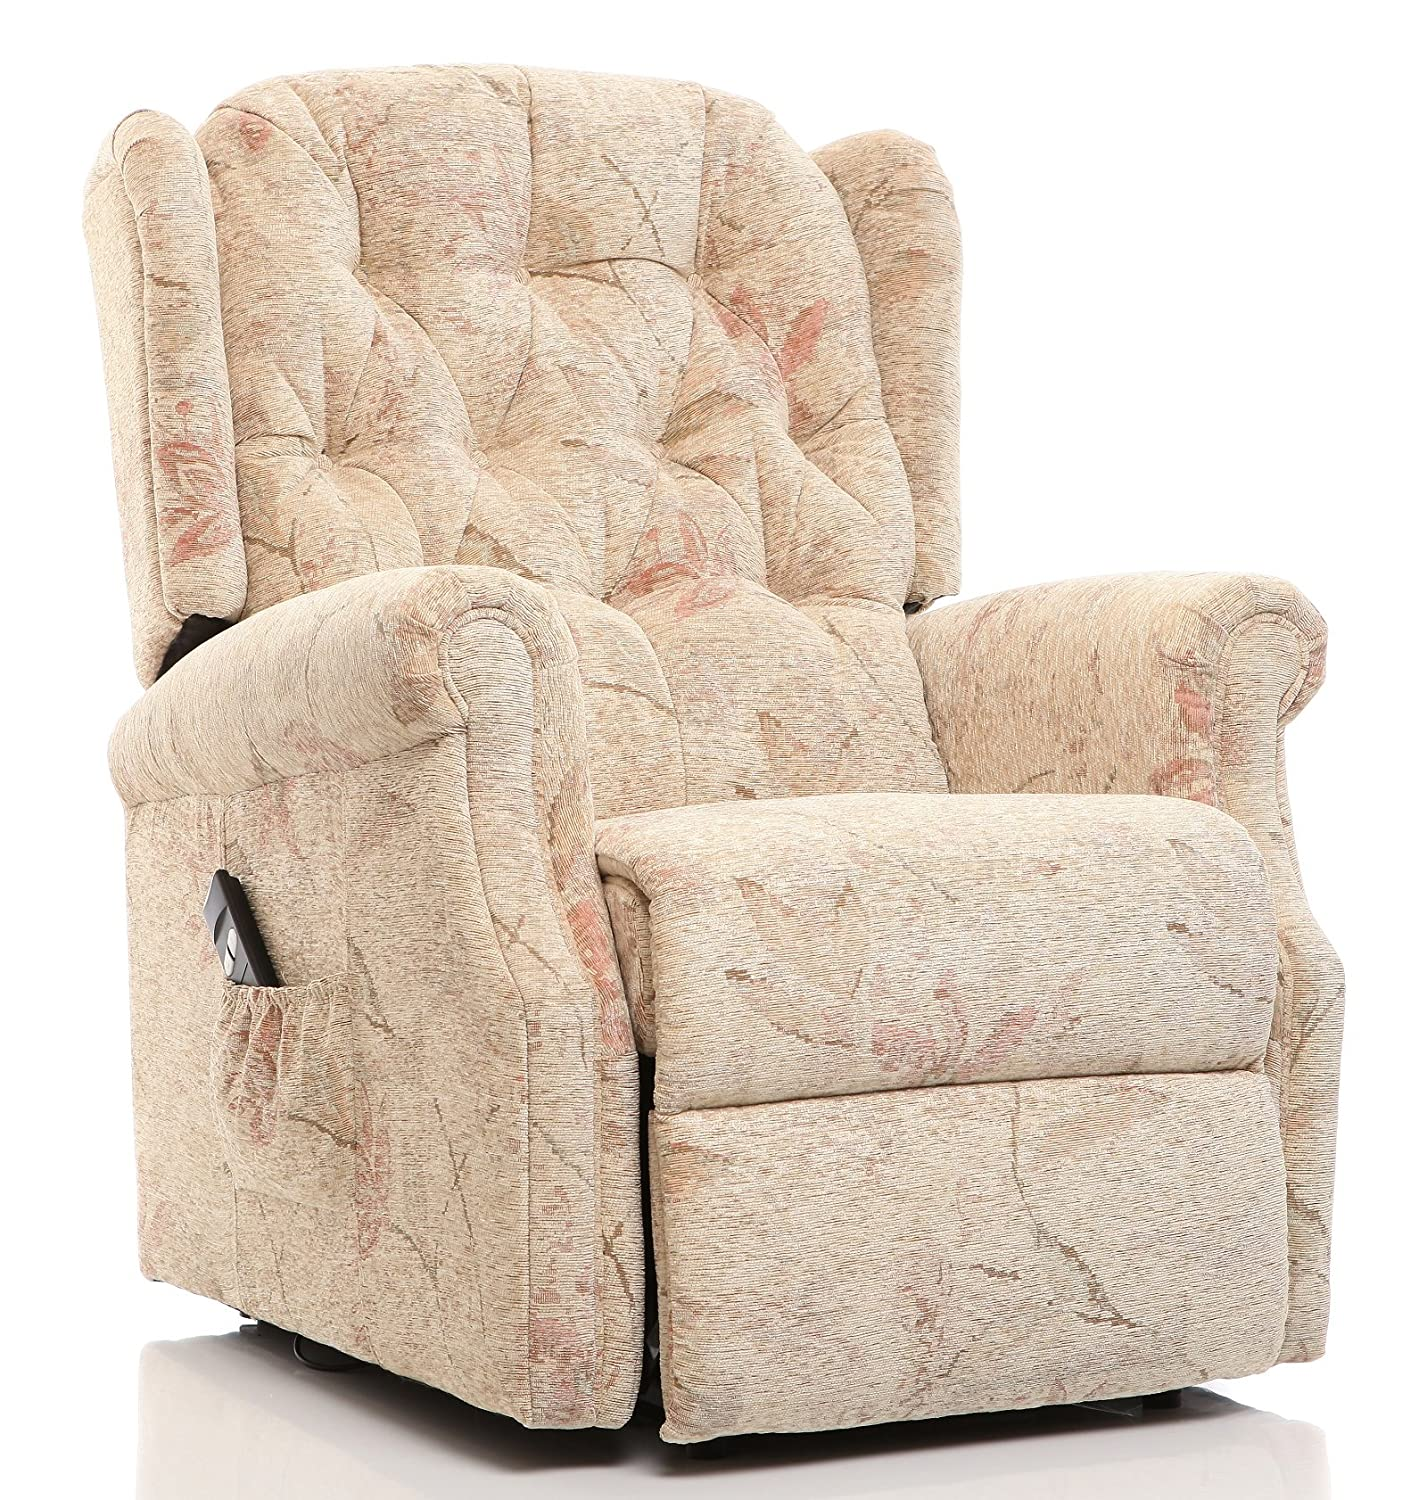 The Oldbury Riser Recliner Lift & Tilt Chair in Beige Fabric